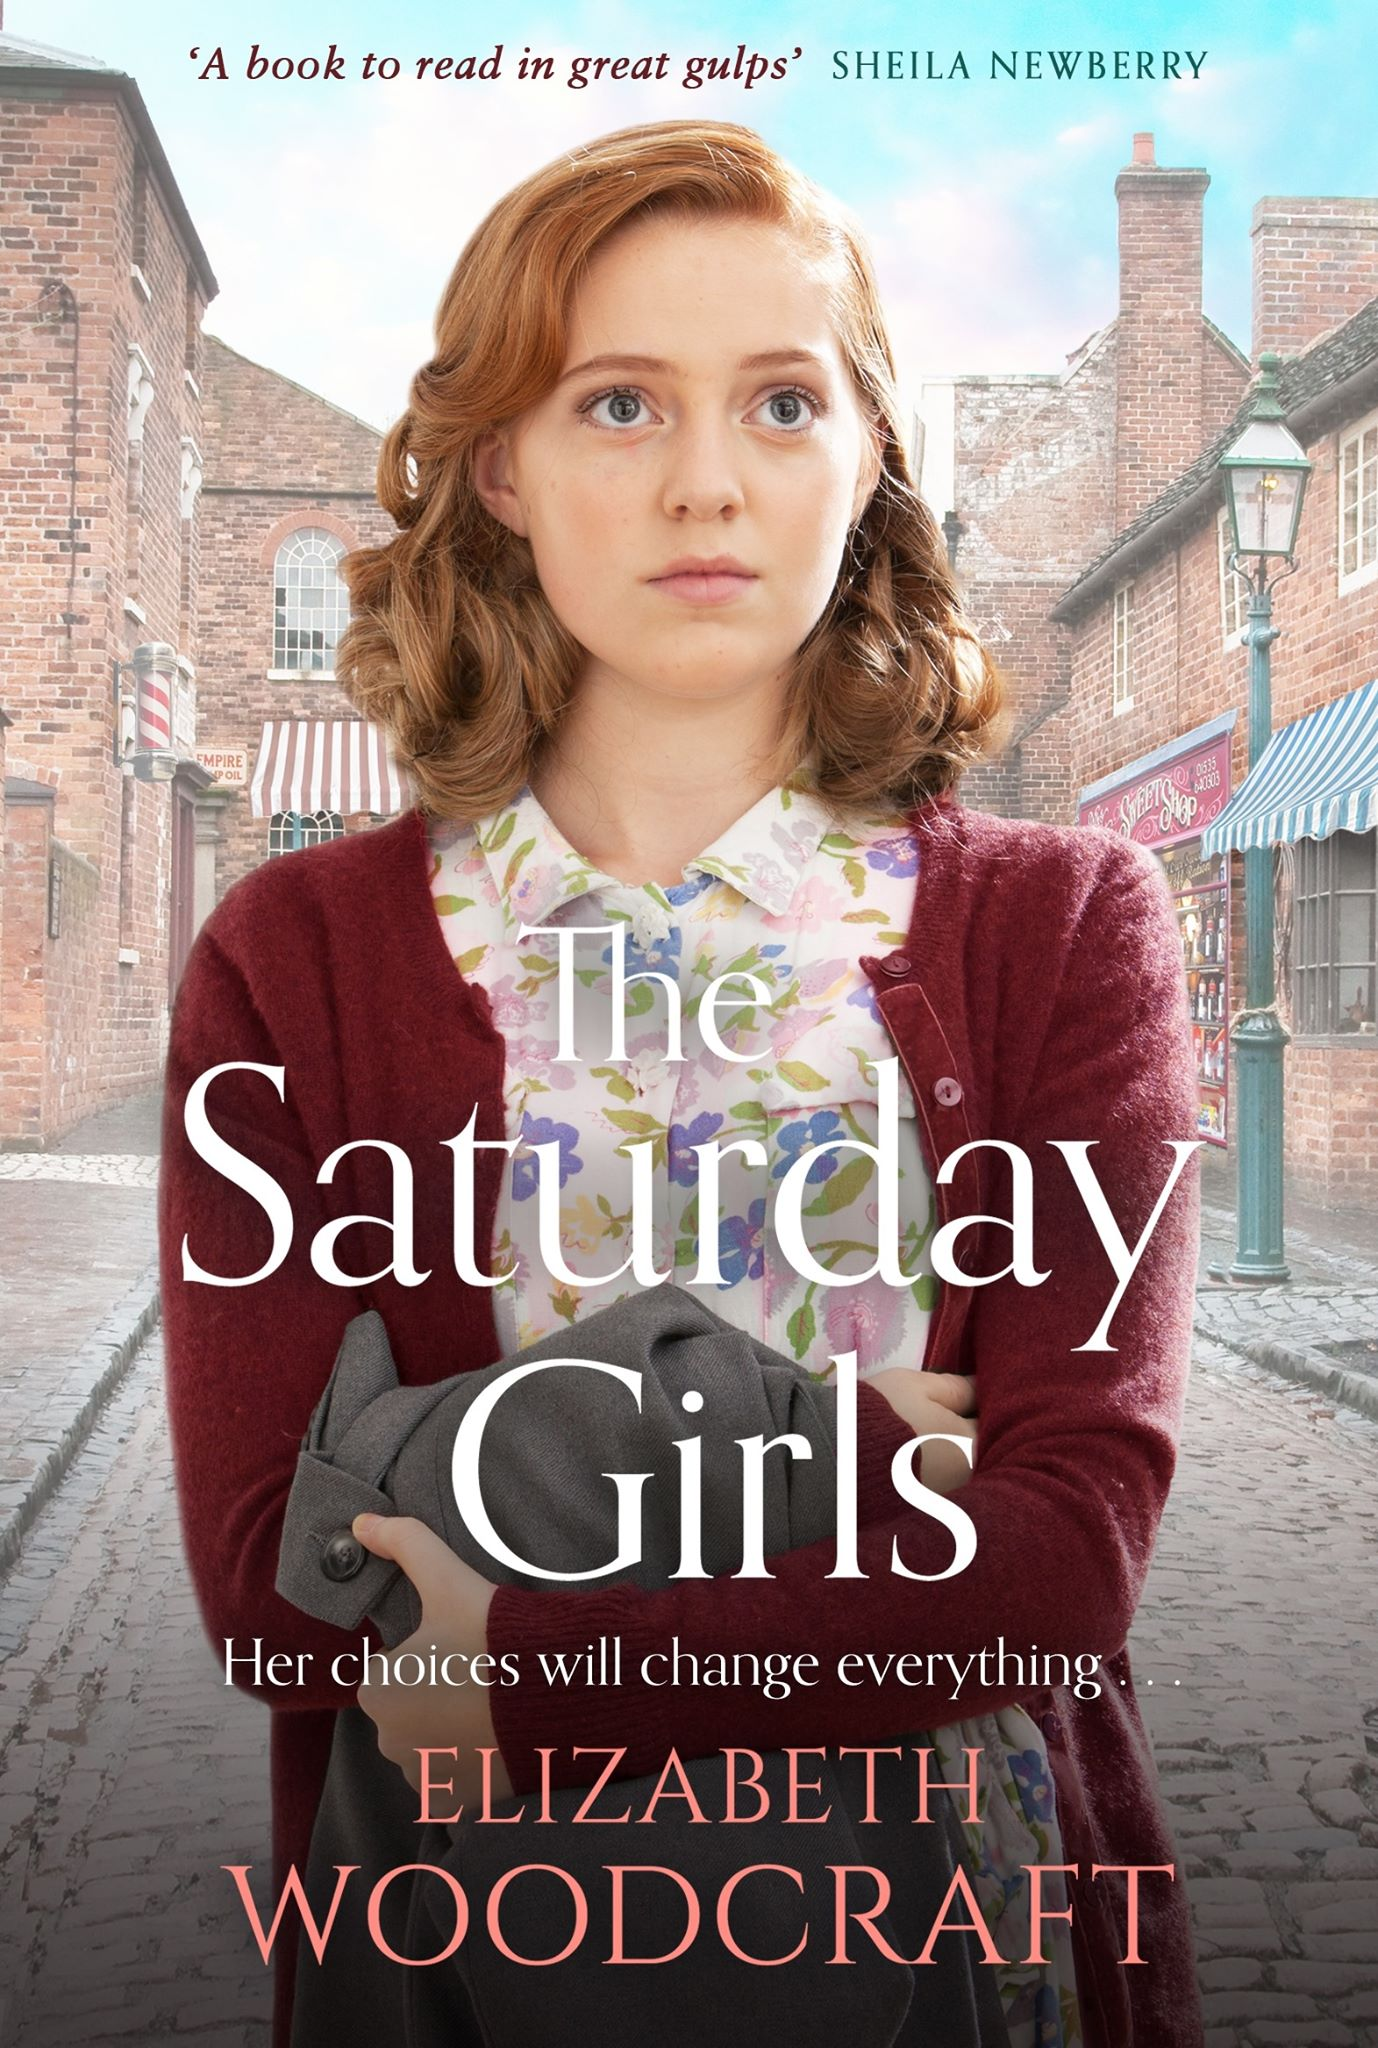 The Saturday Girls - Elizabeth Woodcraft